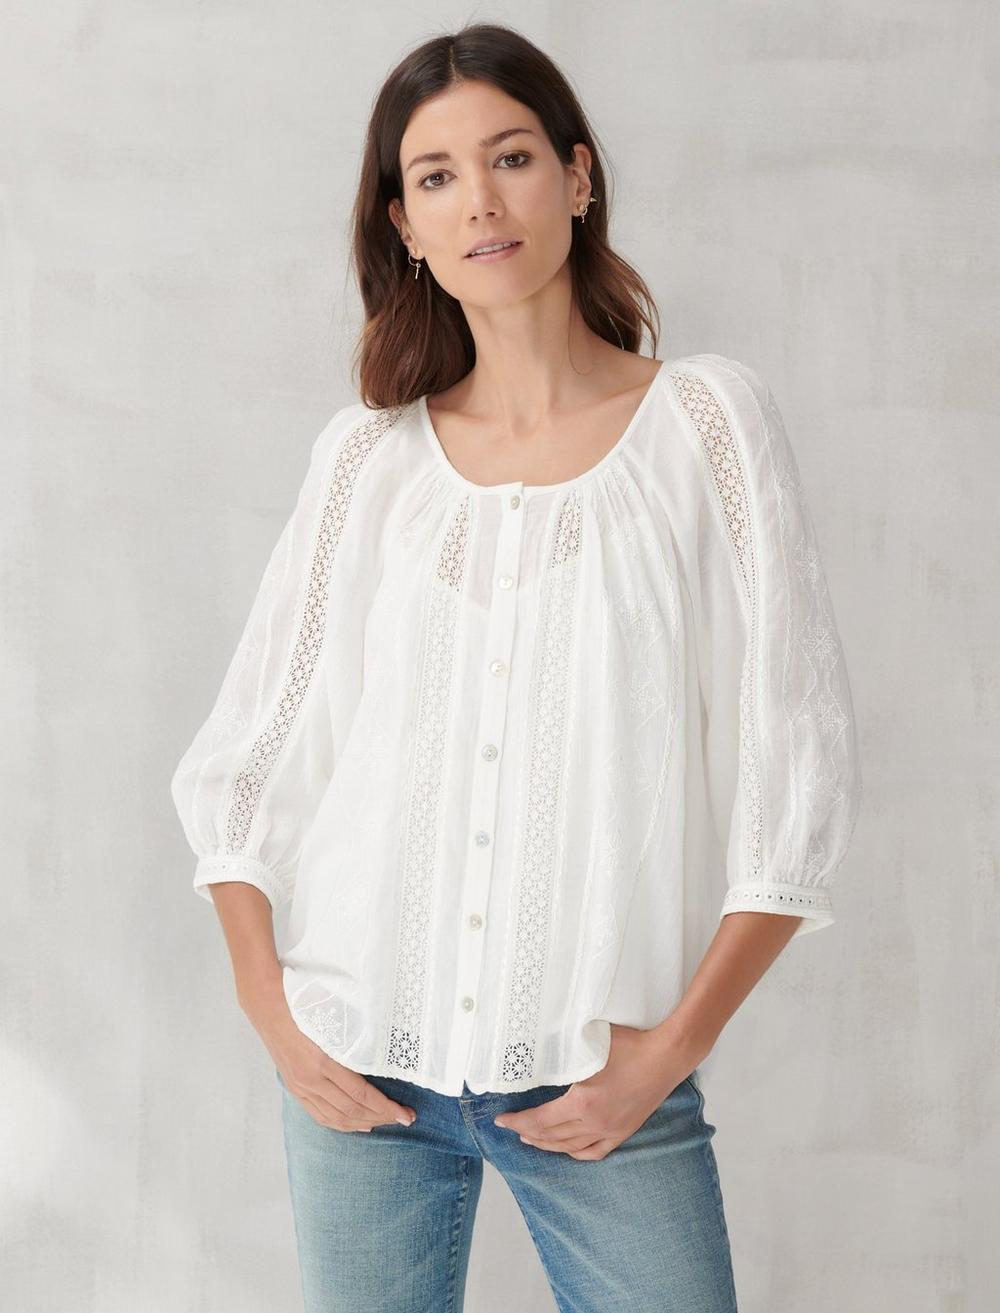 LACE INSET EMBROIDERED BUTTON TOP, image 1